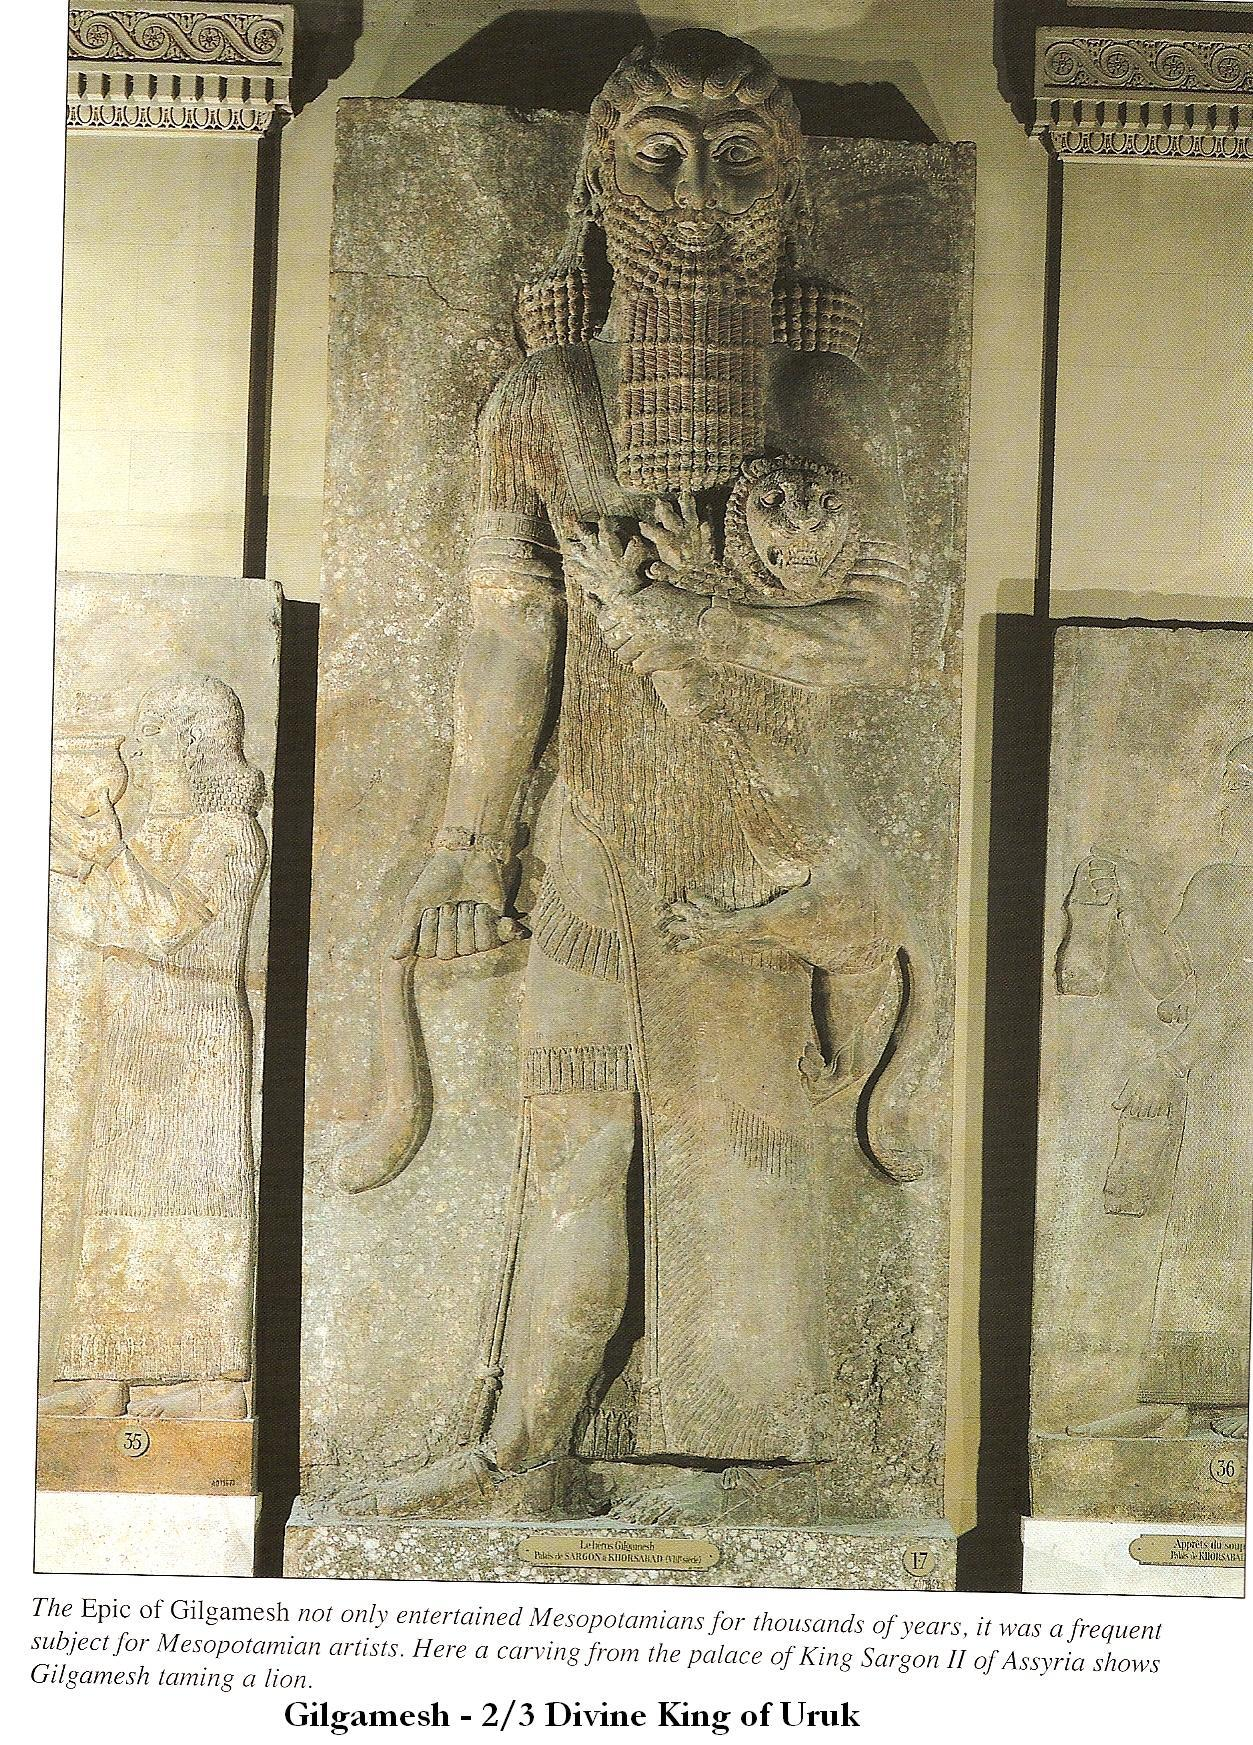 6aa - Gilgamesh two-thirds Divine, the 5th mixed-breed king of Uruk, spouse to Inanna & son to Ninsun, Ninsun's son Dumuzi was Inanna's original spouse-god, he died early in their marriage